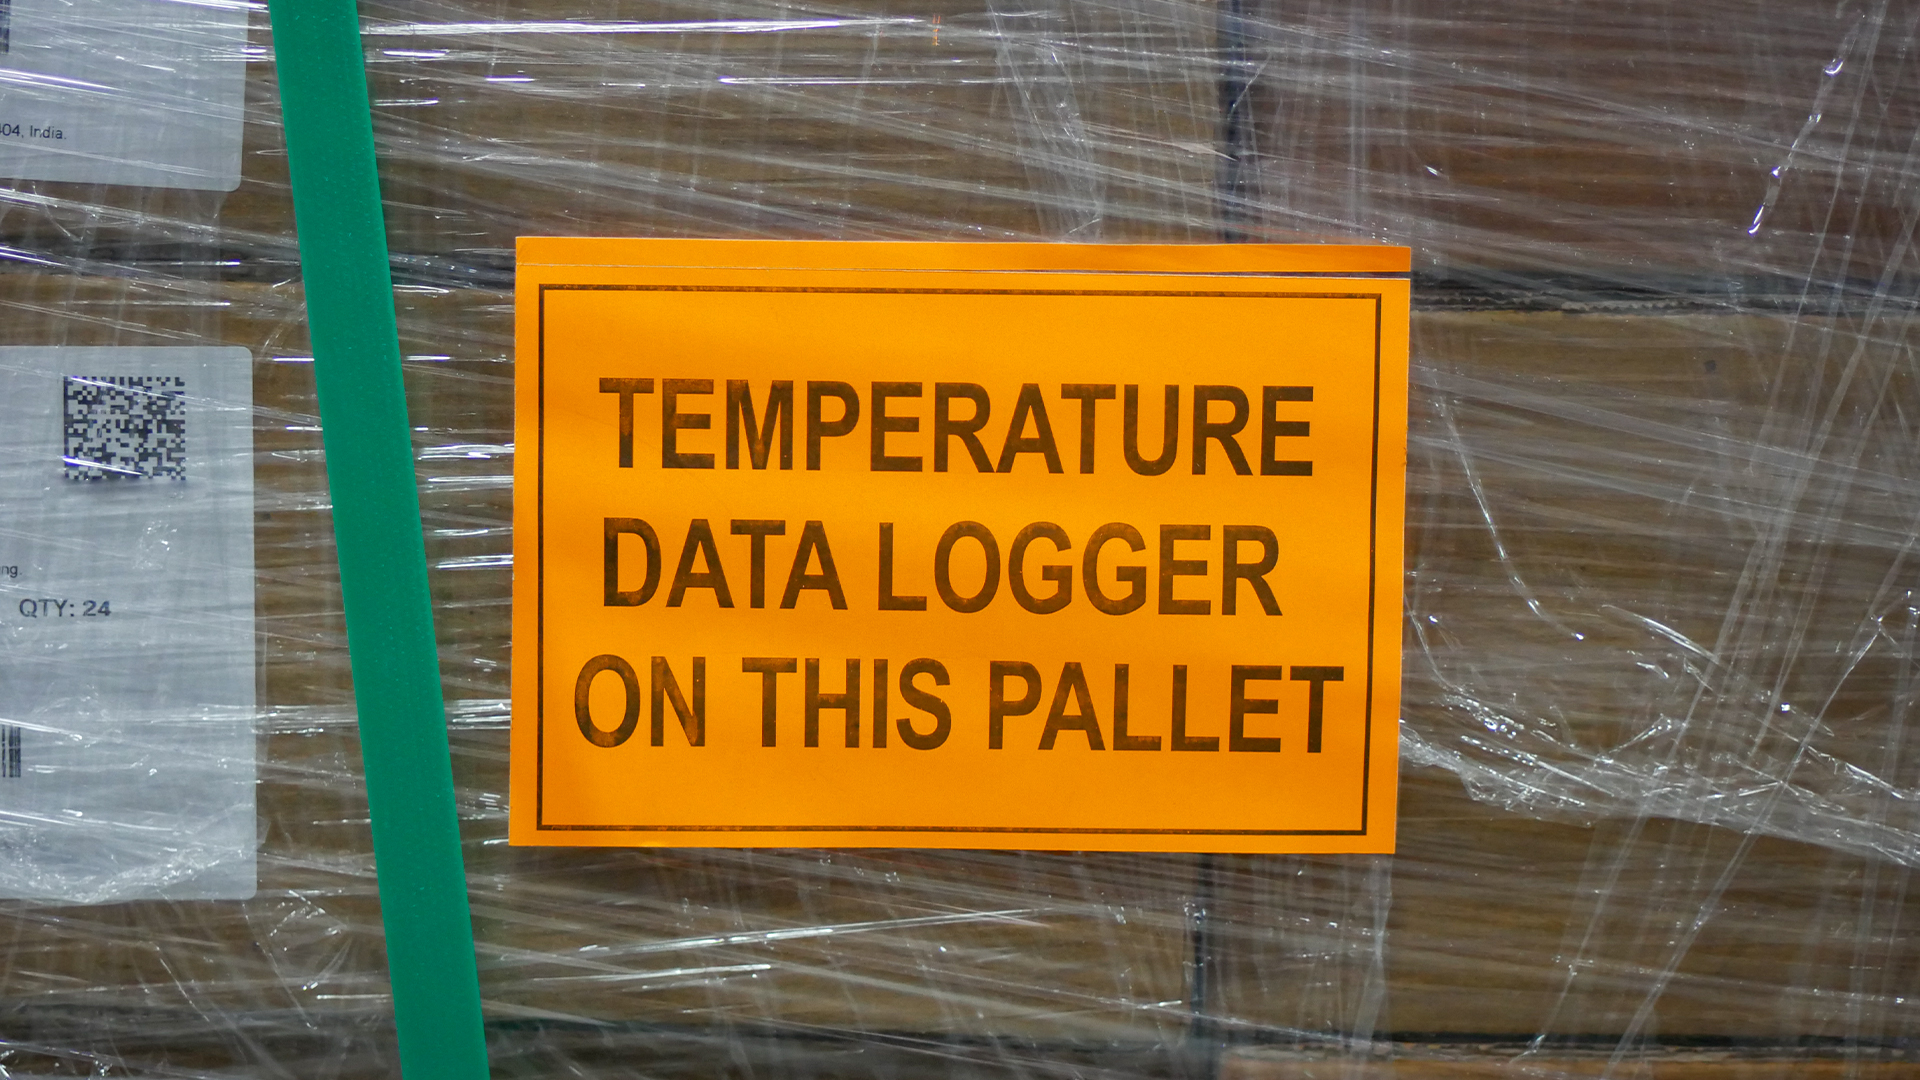 sign indicating temperature data logger is on pallet